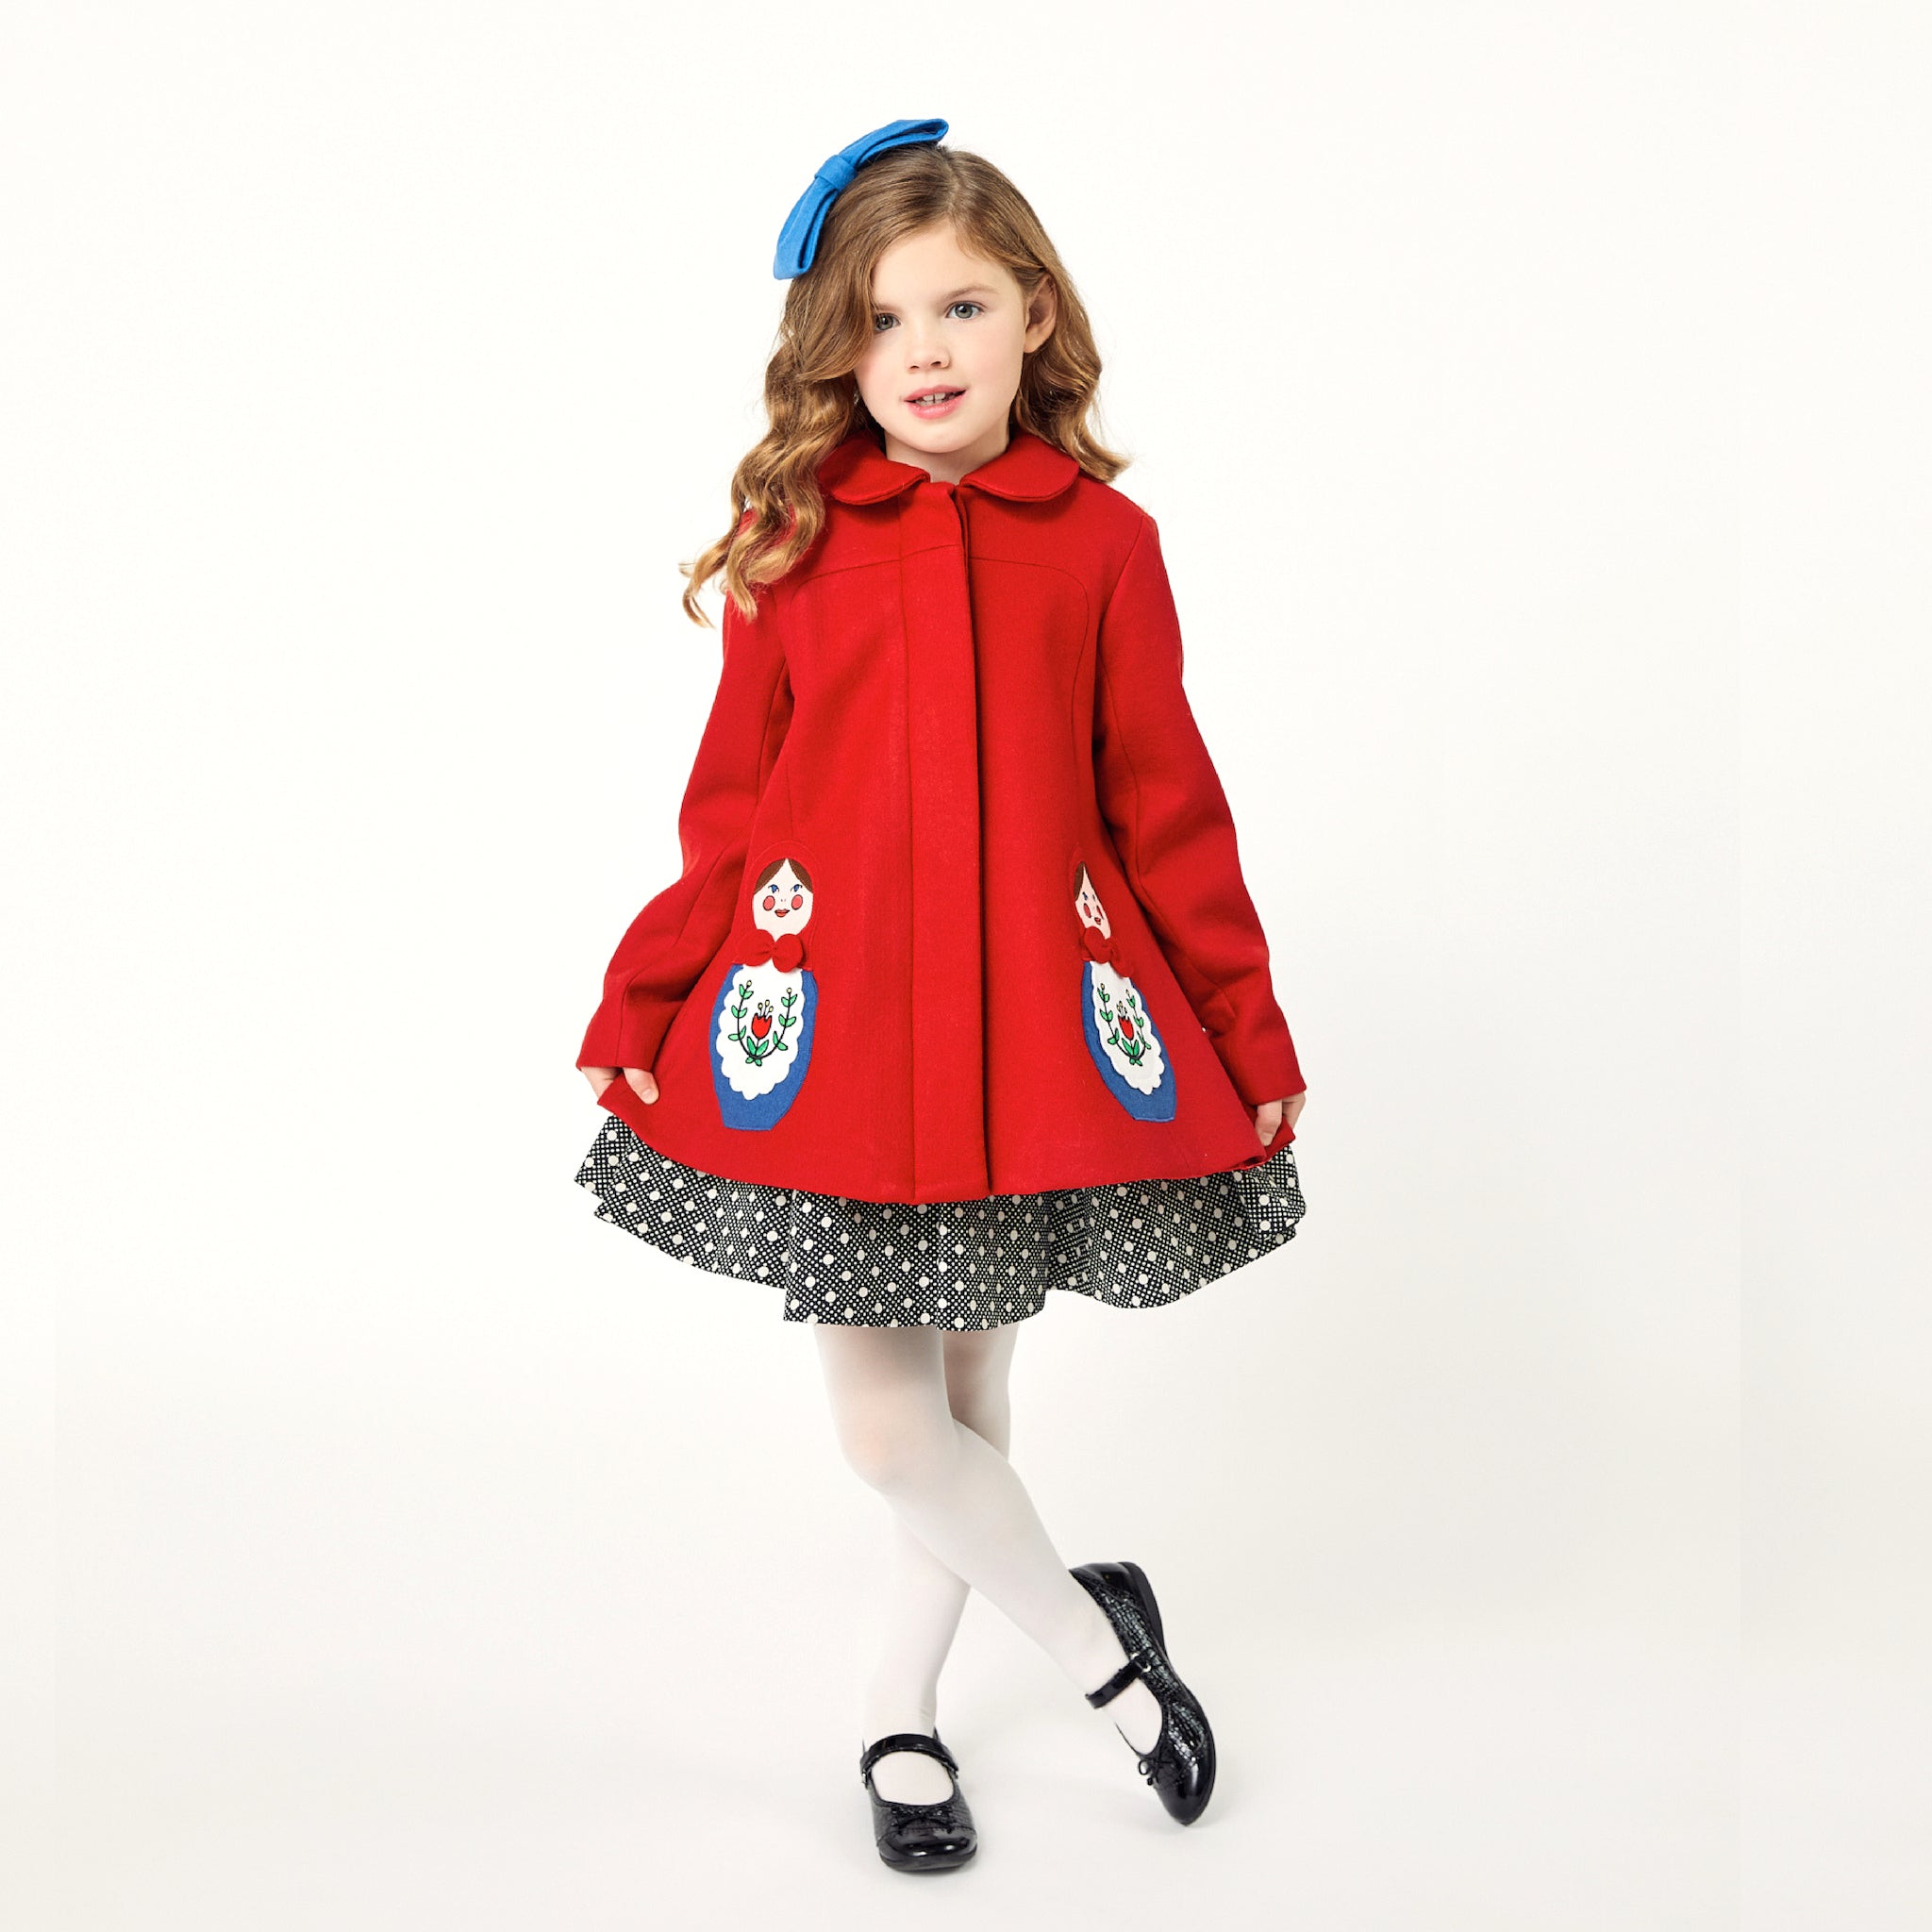 Girl modeling red coat while curtsying.